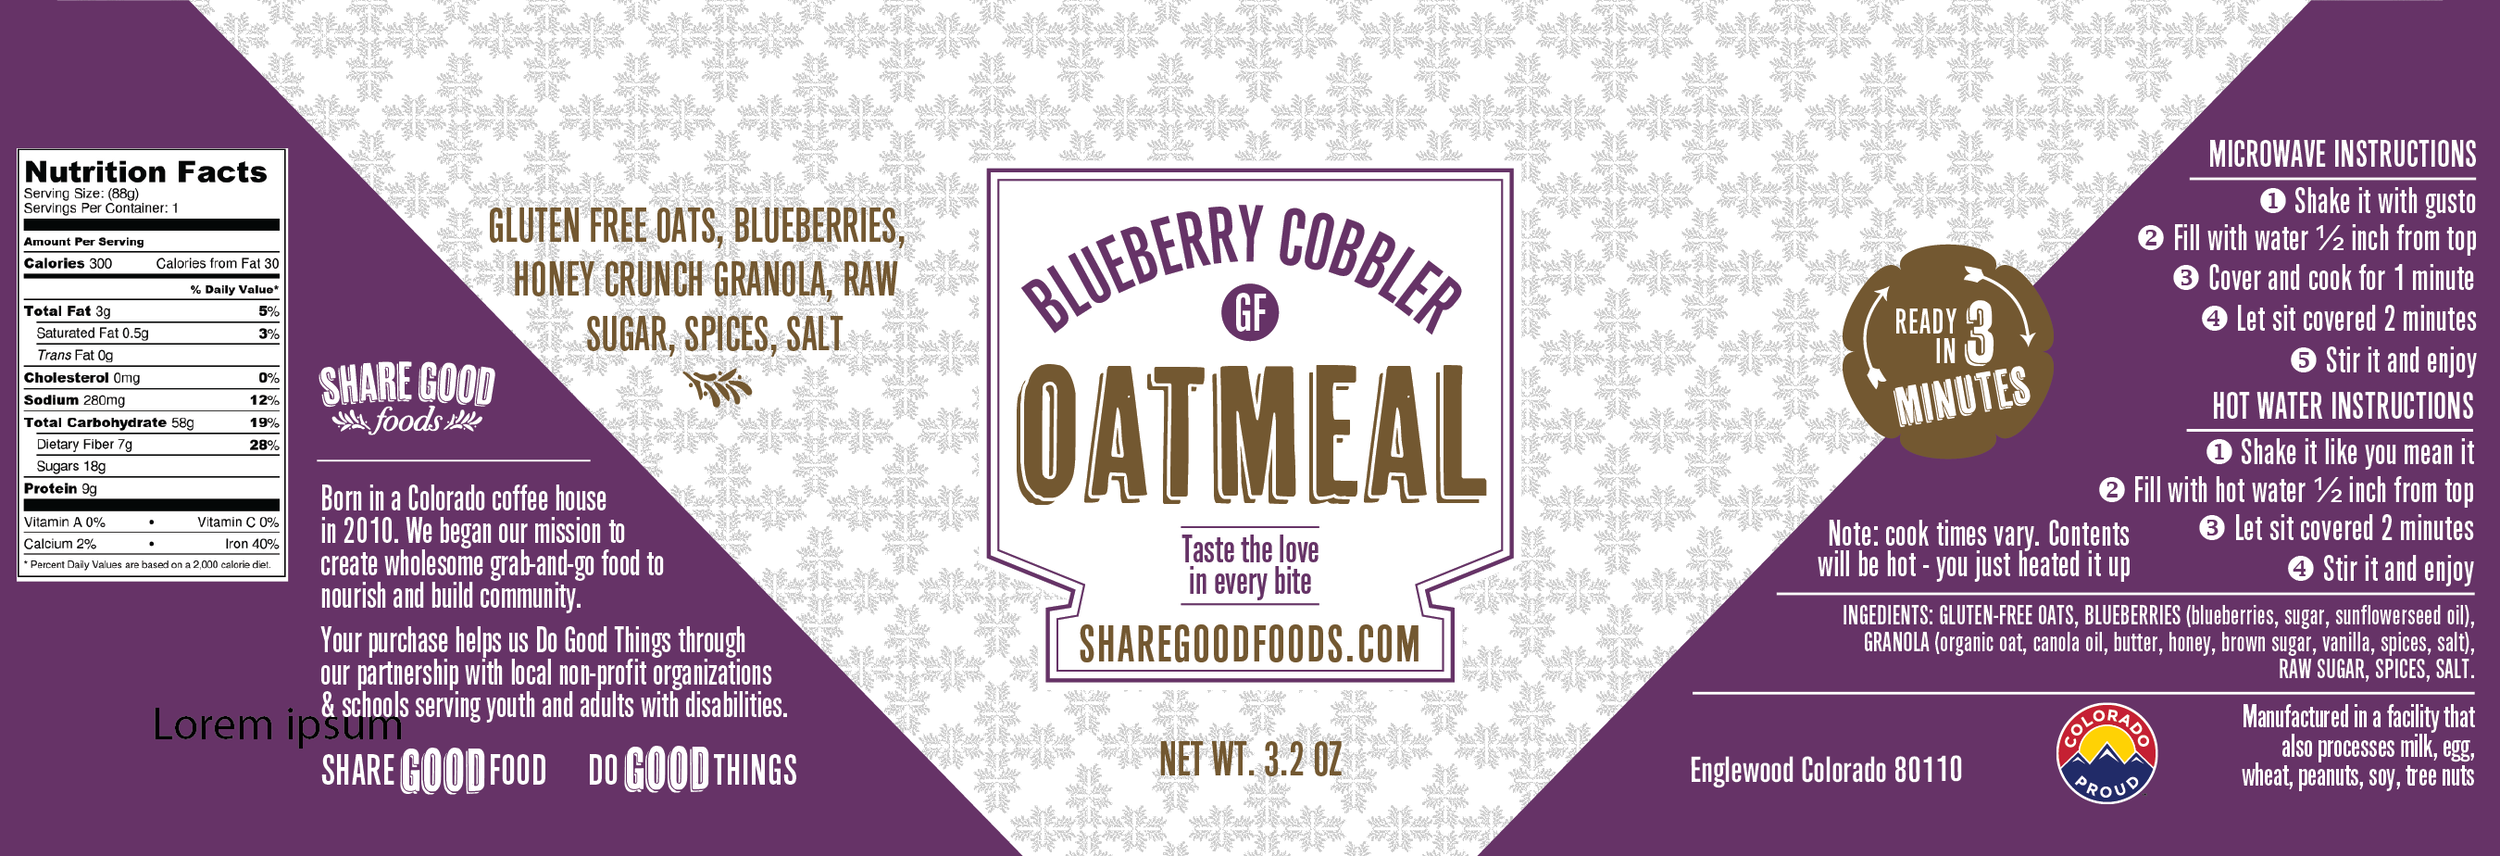 Blueberry Cobbler Oatmeal.png